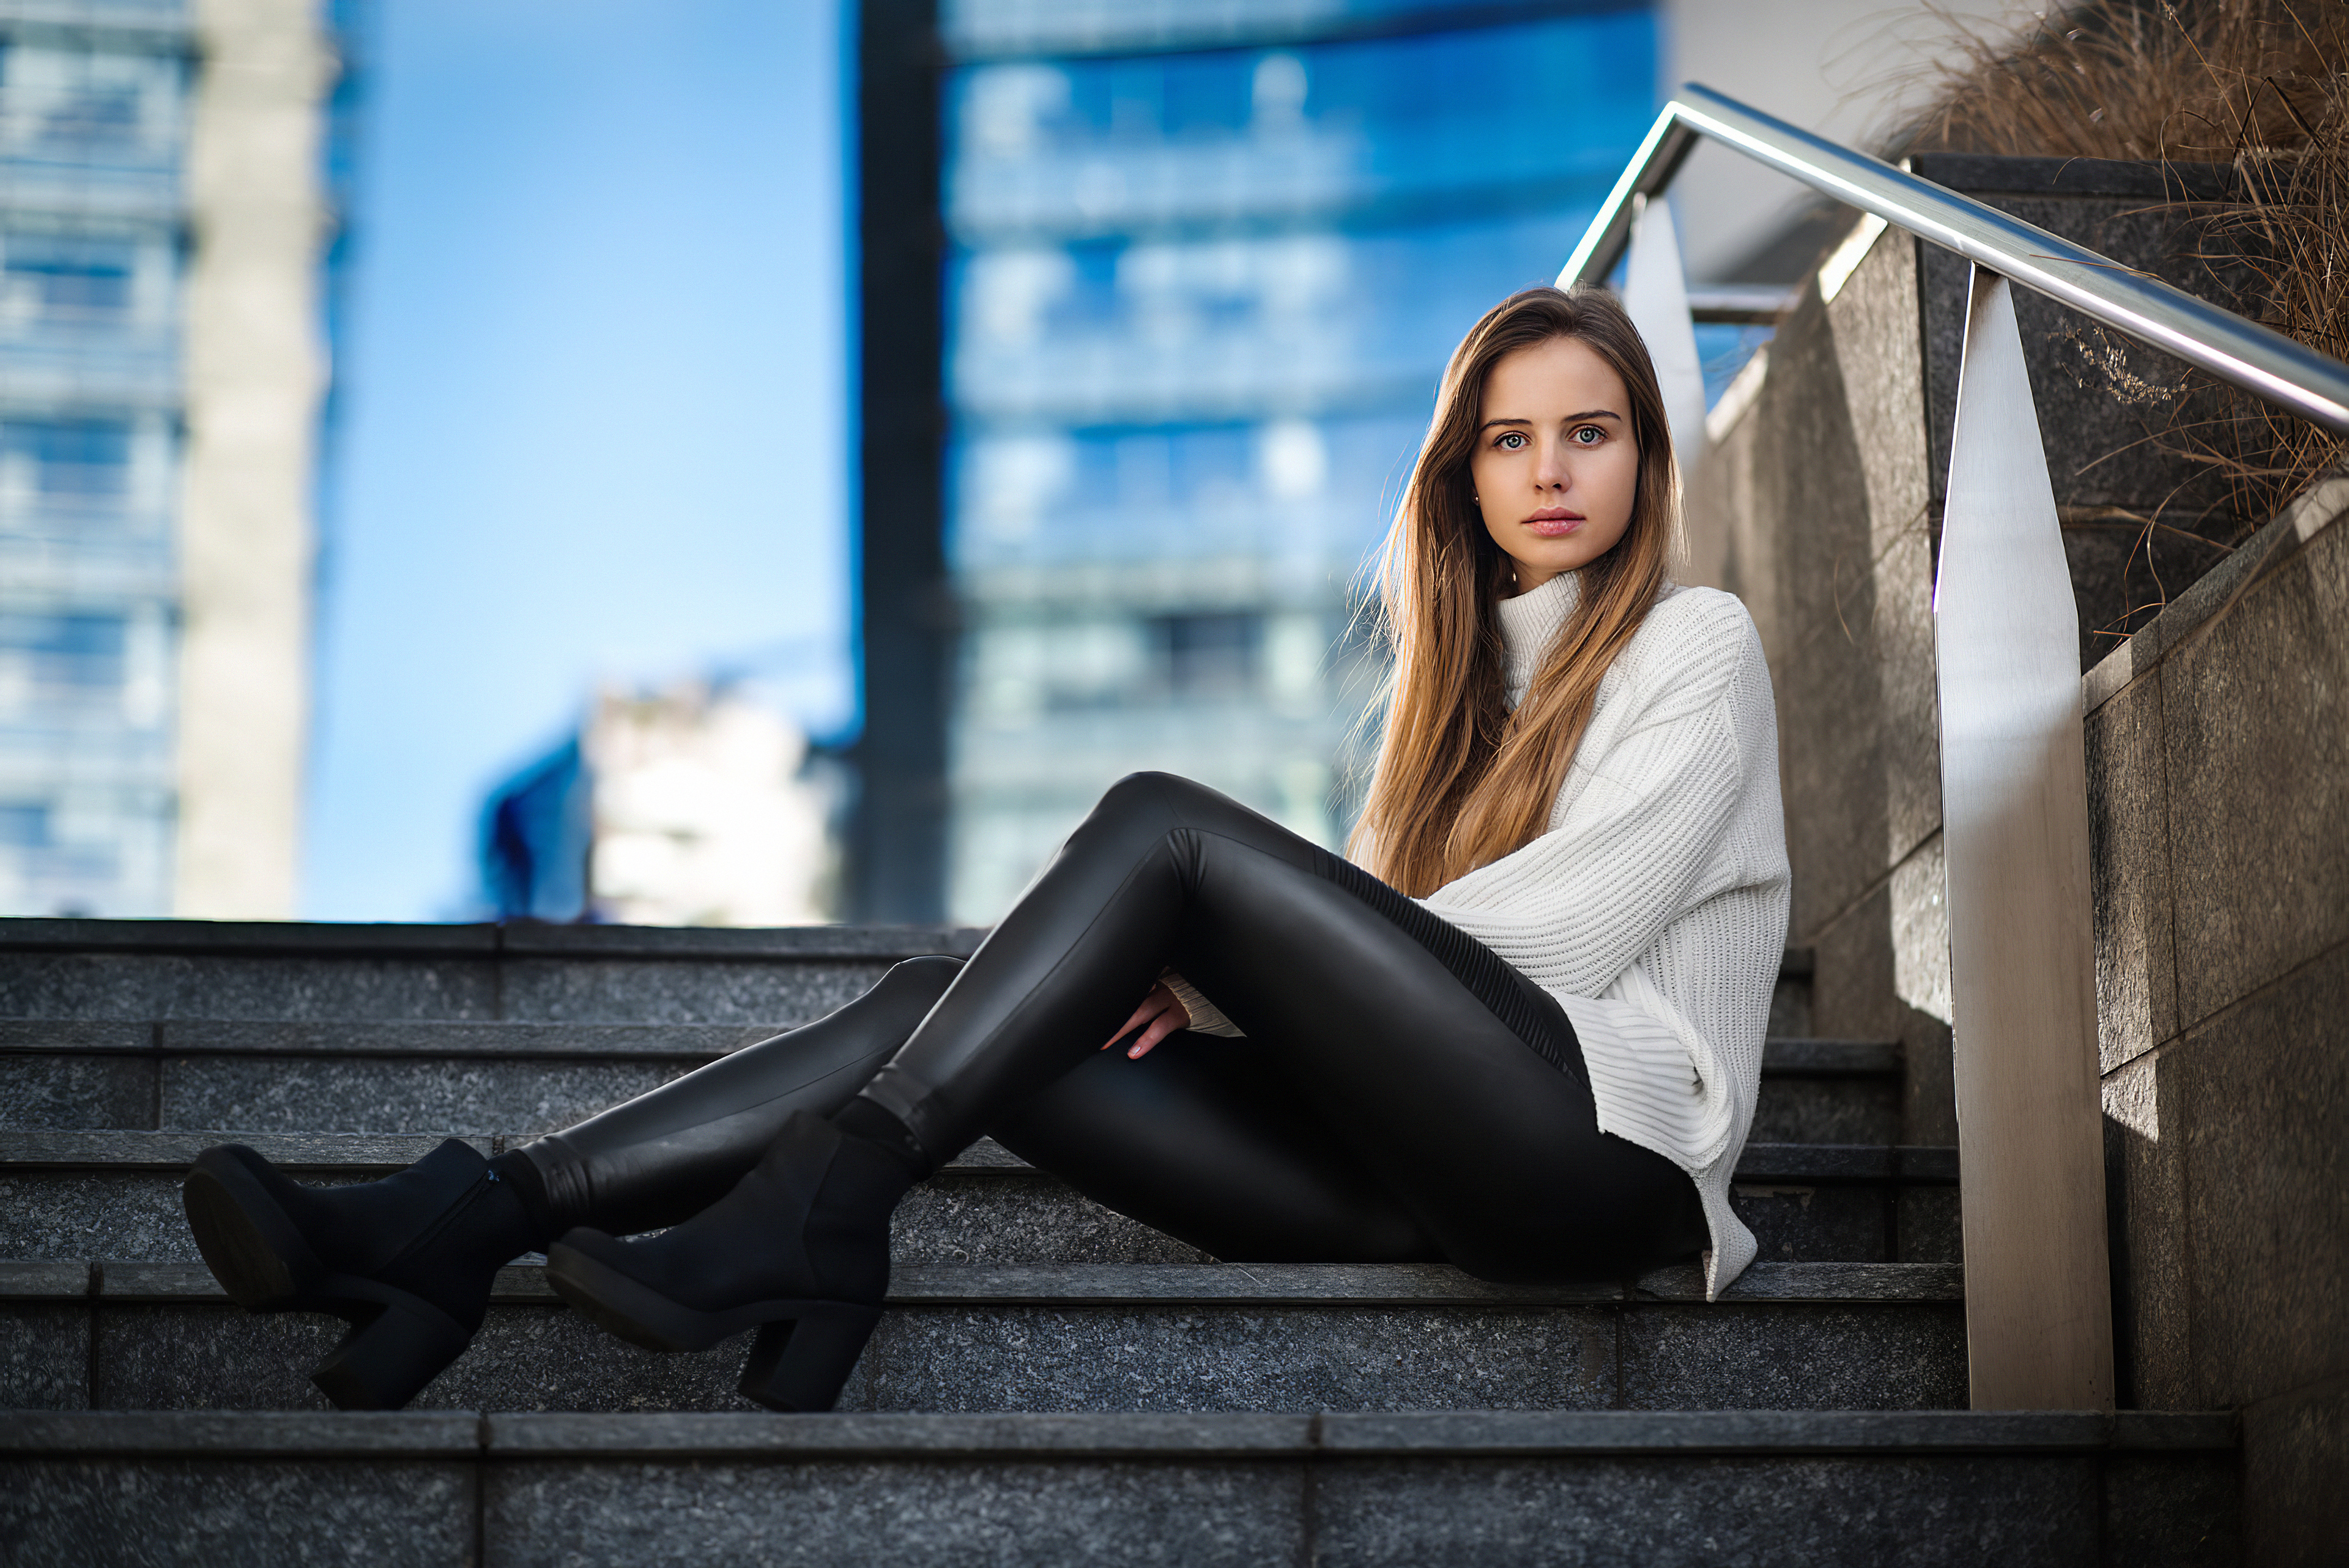 girl sitting on stairs looking at viewer 1575666041 - Girl Sitting On Stairs Looking At Viewer -